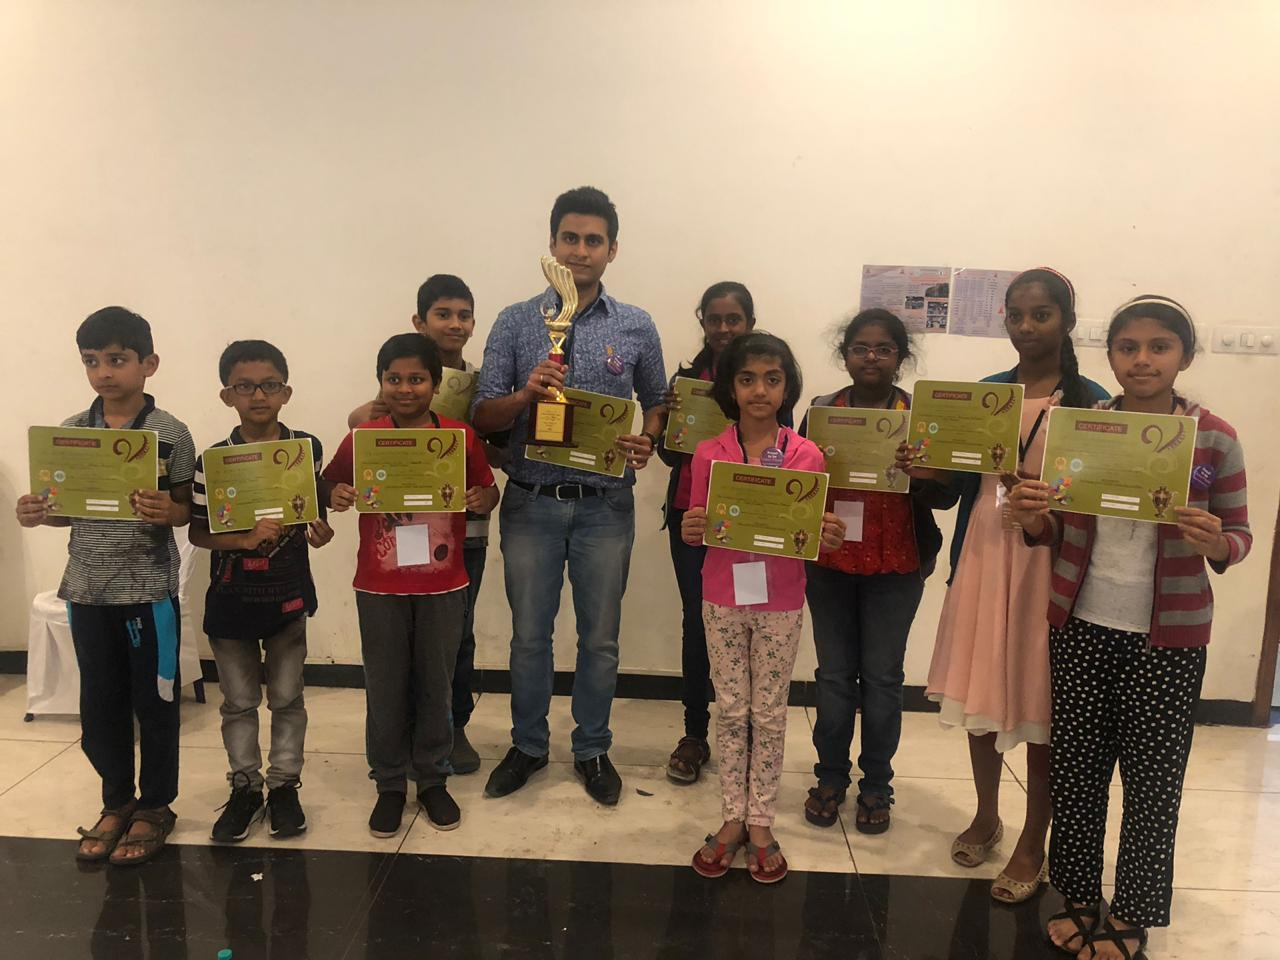 Mind Mentorz secures 8th posiion in the CPL - 3 (Chess Promoting League) Team tournament.